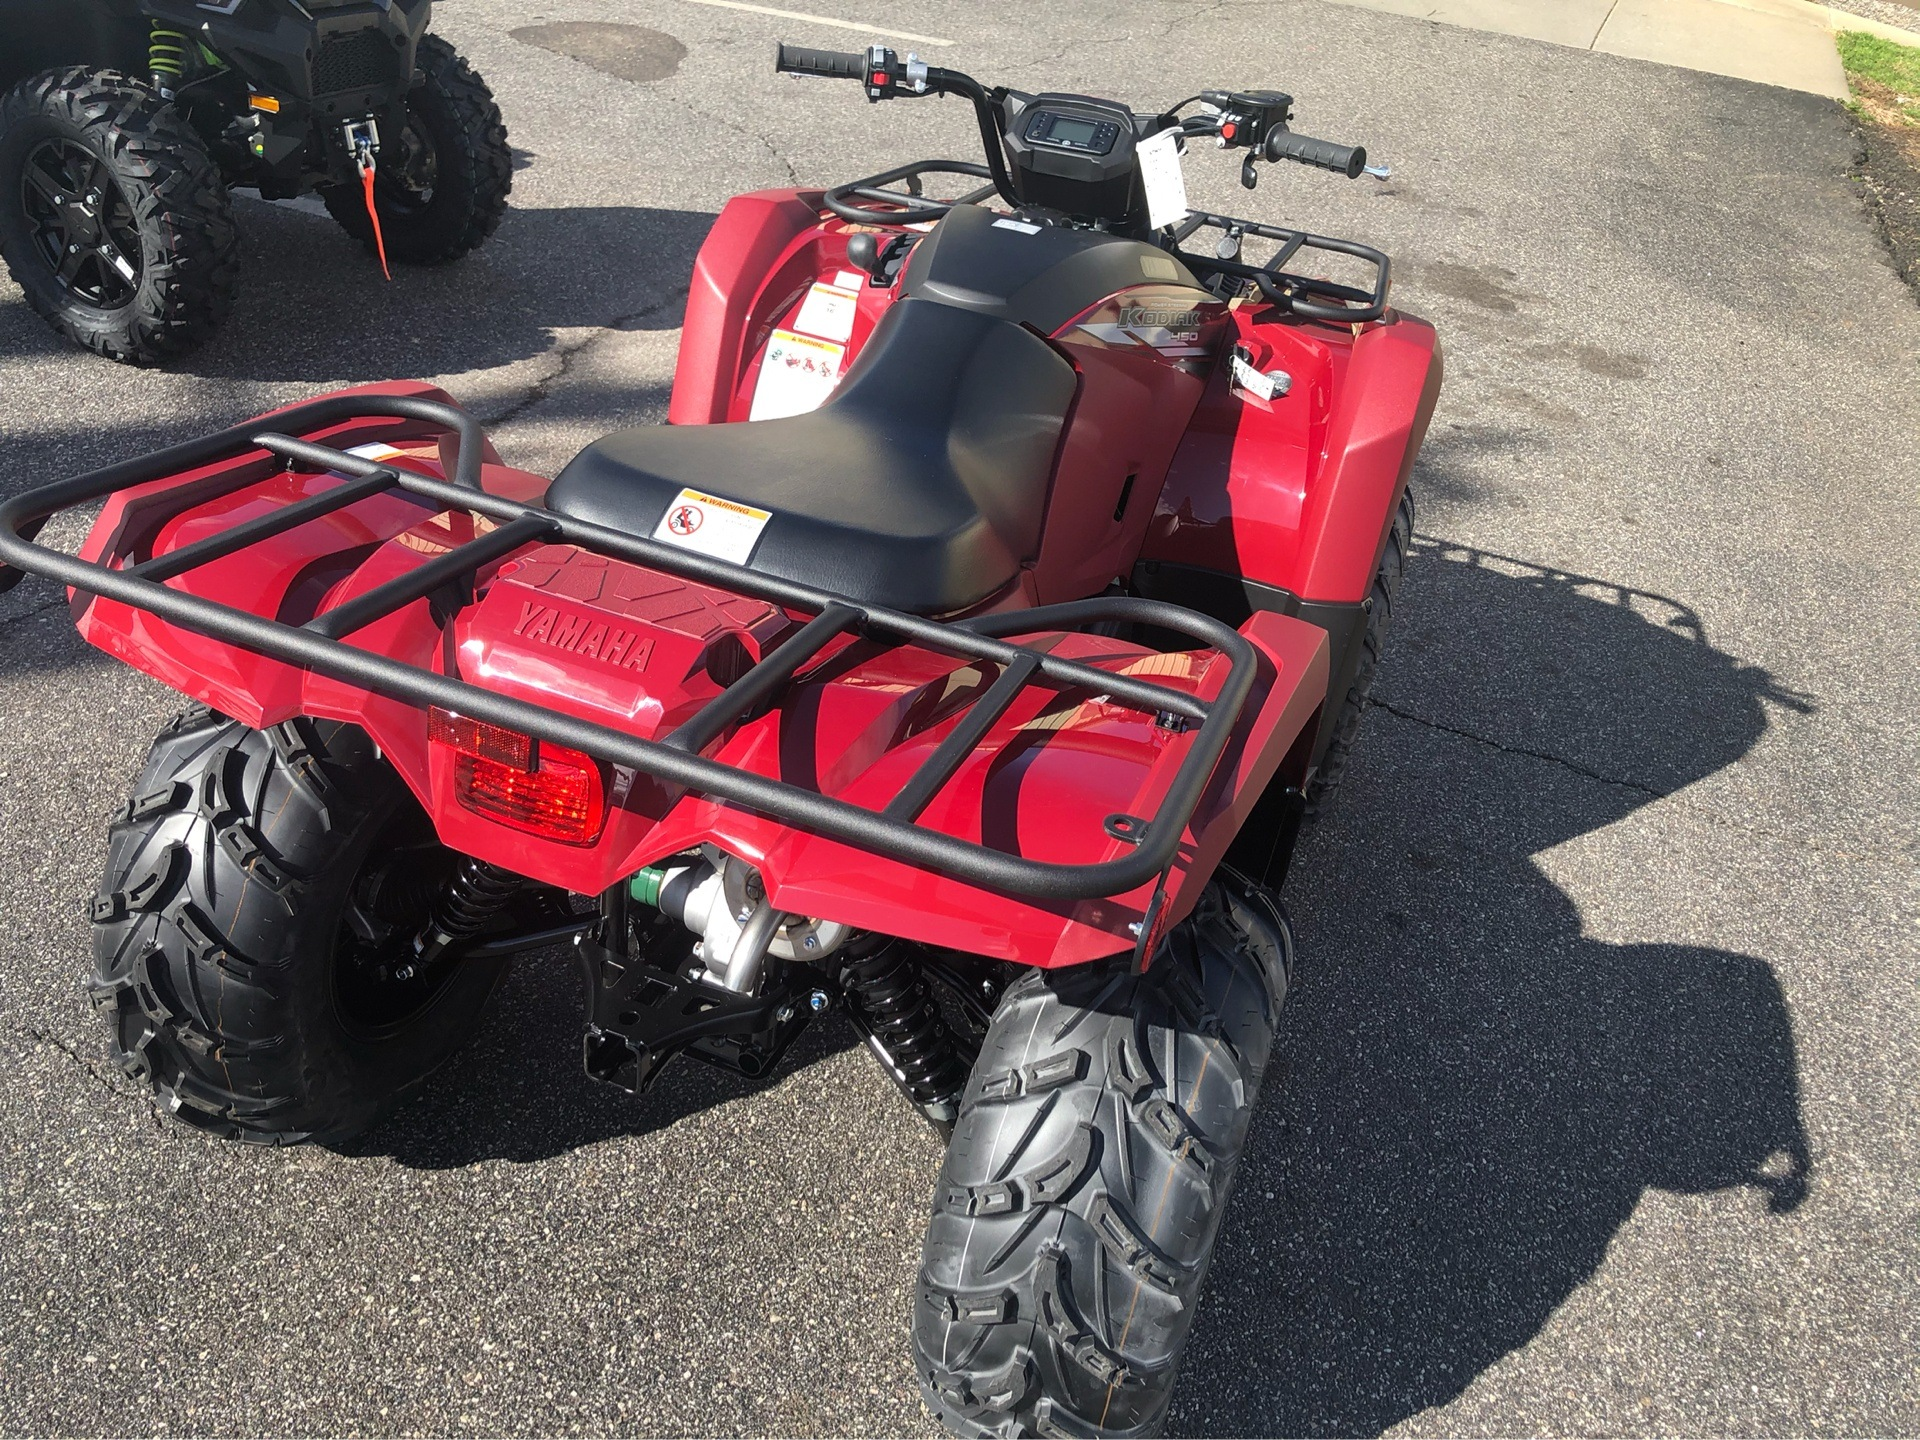 2020 Yamaha Kodiak 450 EPS in Statesville, North Carolina - Photo 4